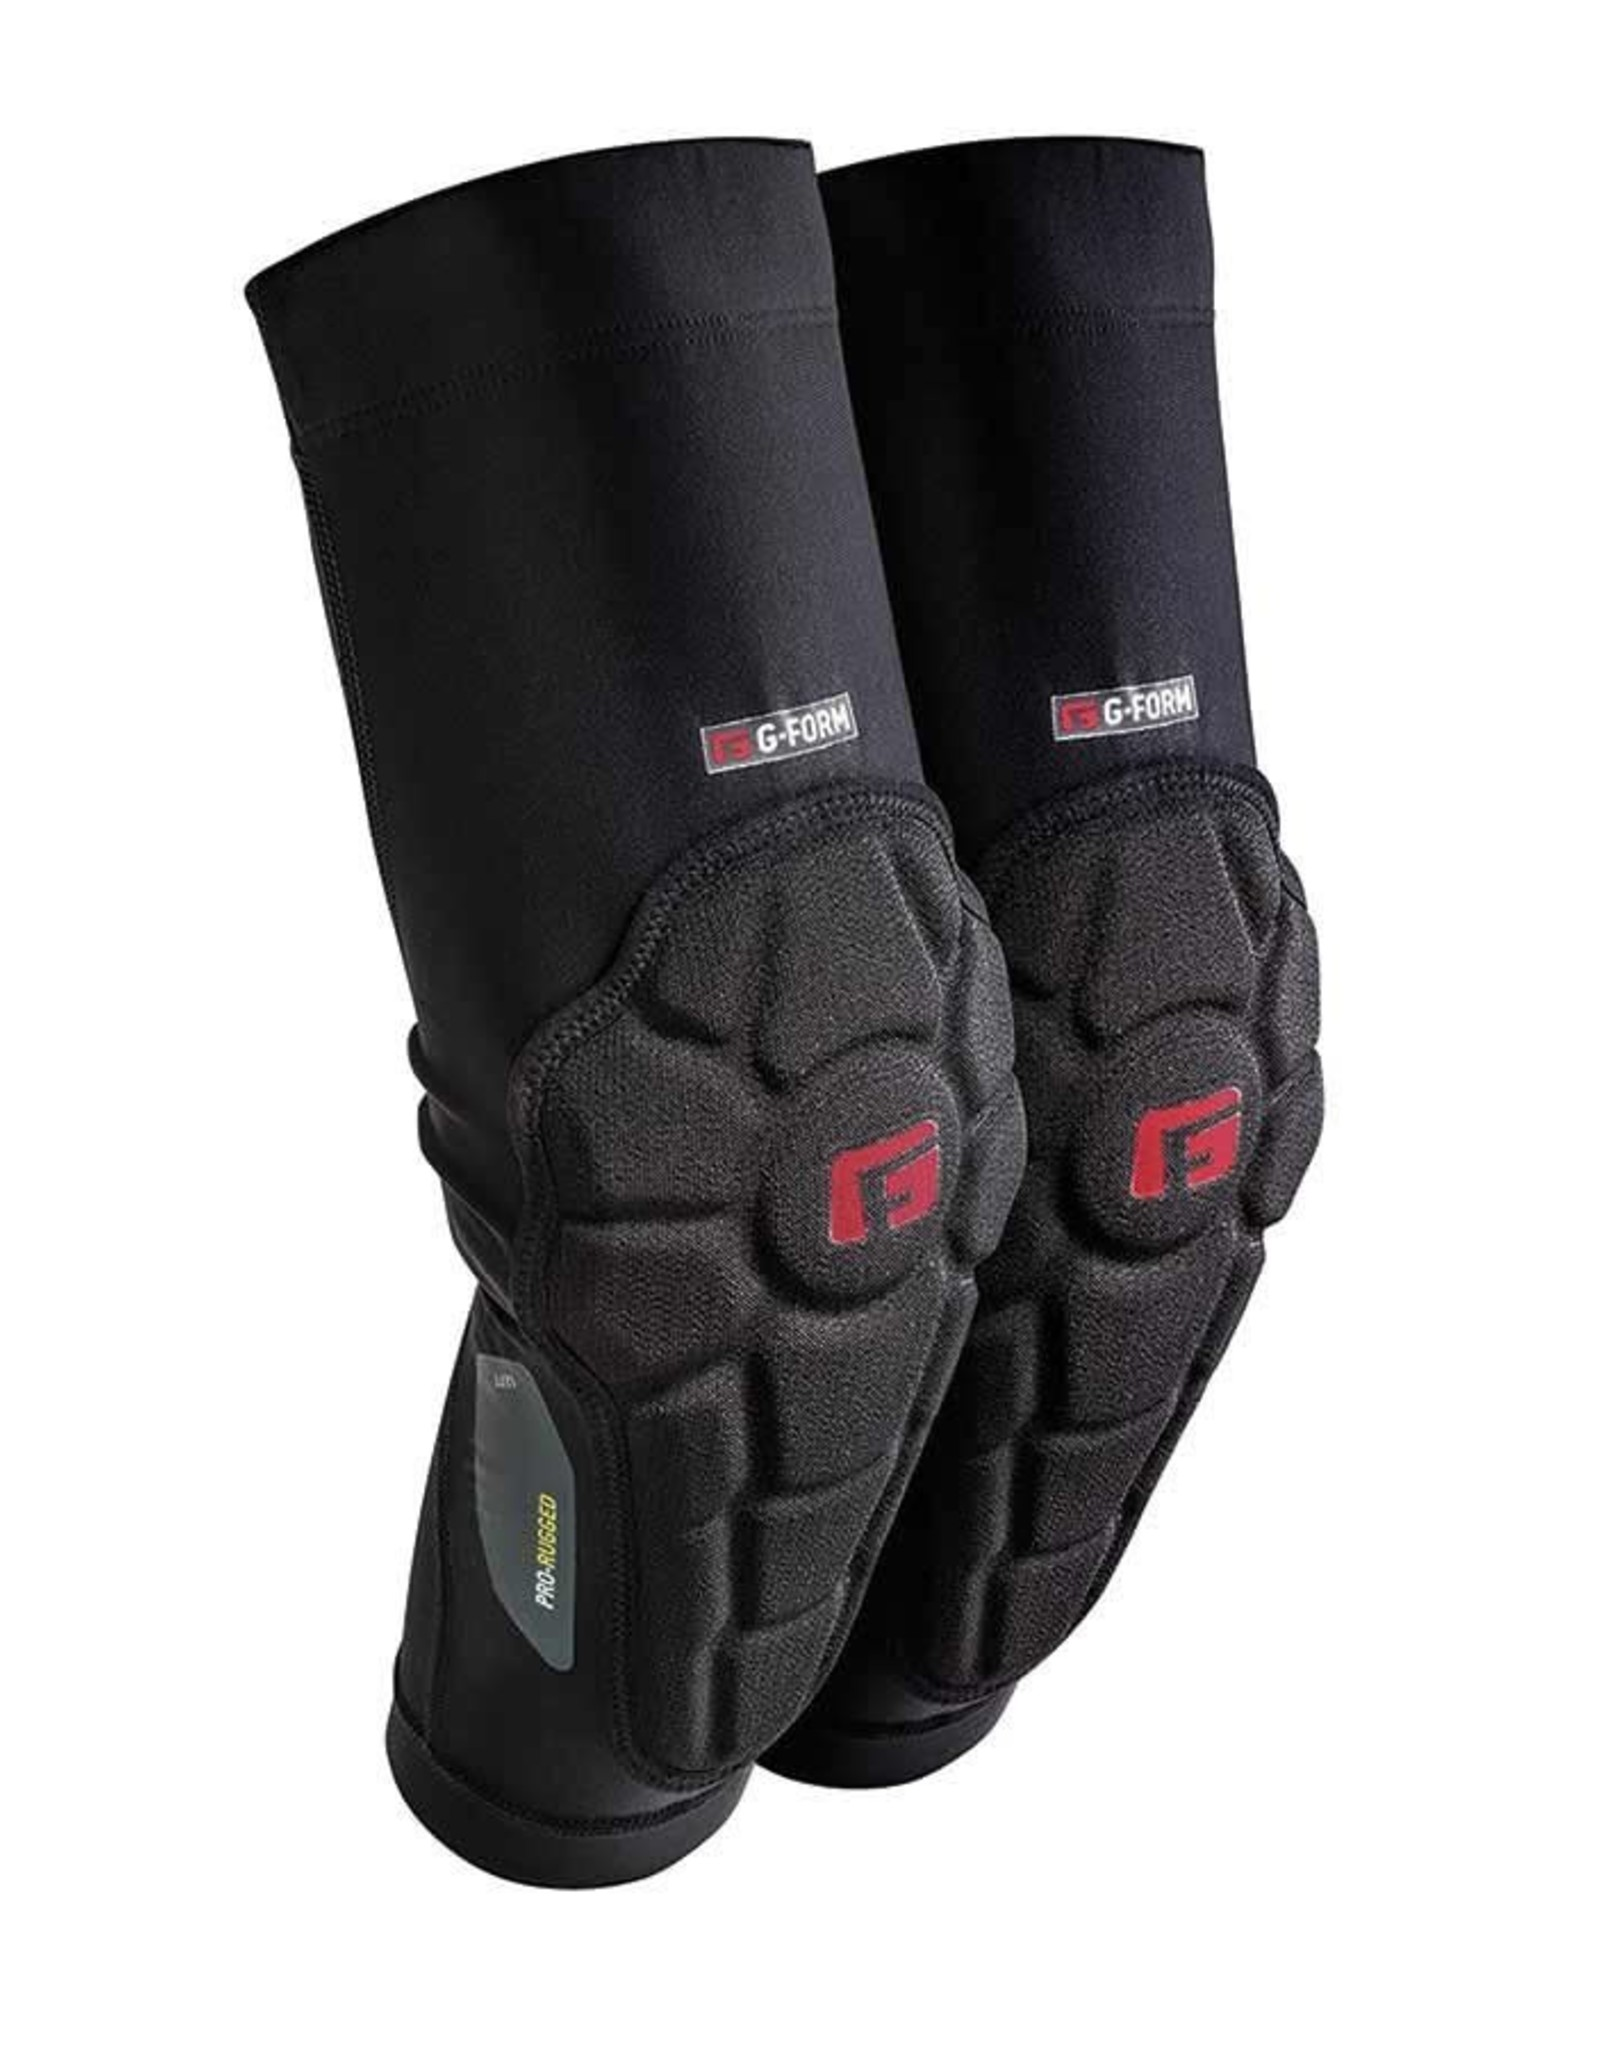 G-FORM G-Form Pro Rugged Elbow pads, Black Large